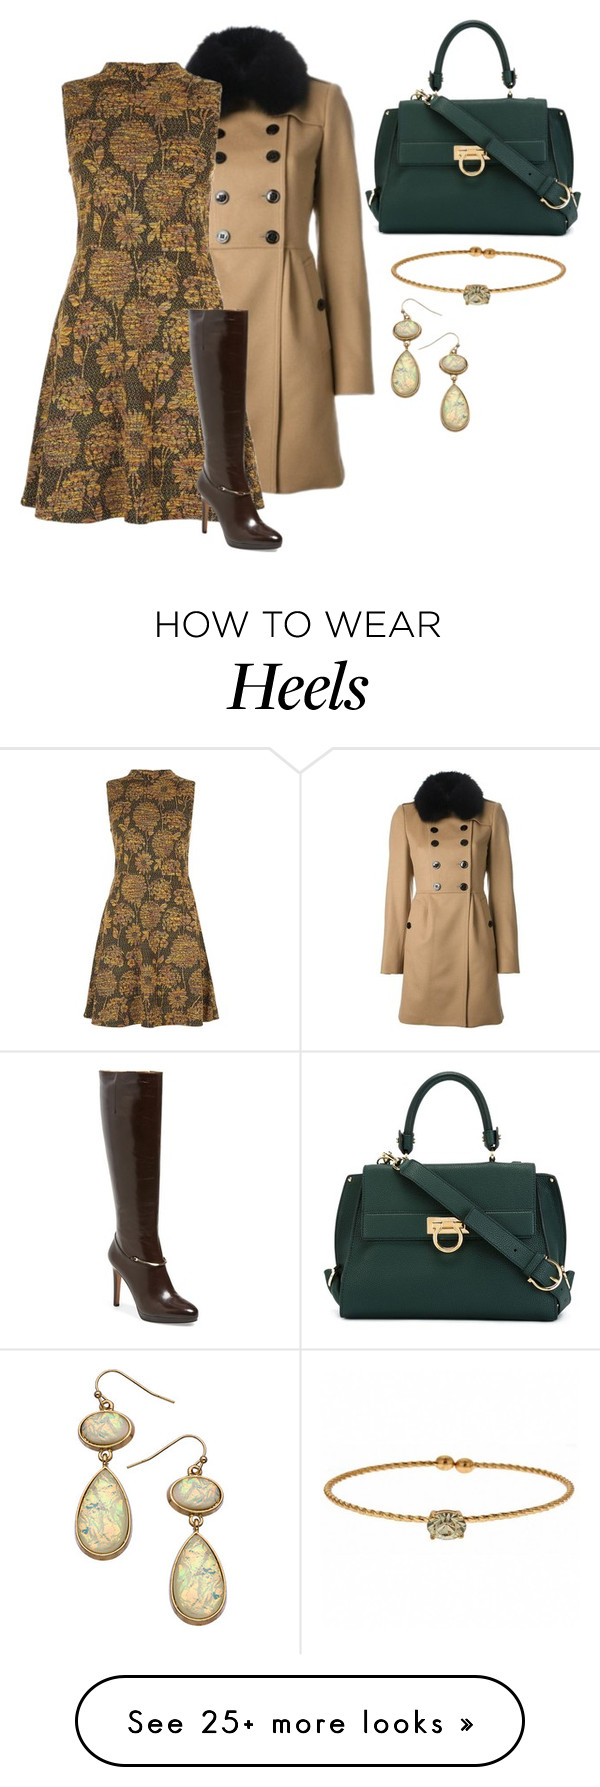 """cashmere carpets"" by shoesclothesbagsaddict on Polyvore featuring Burberry, Nine West, Salvatore Ferragamo, Blu Bijoux and Fornash"